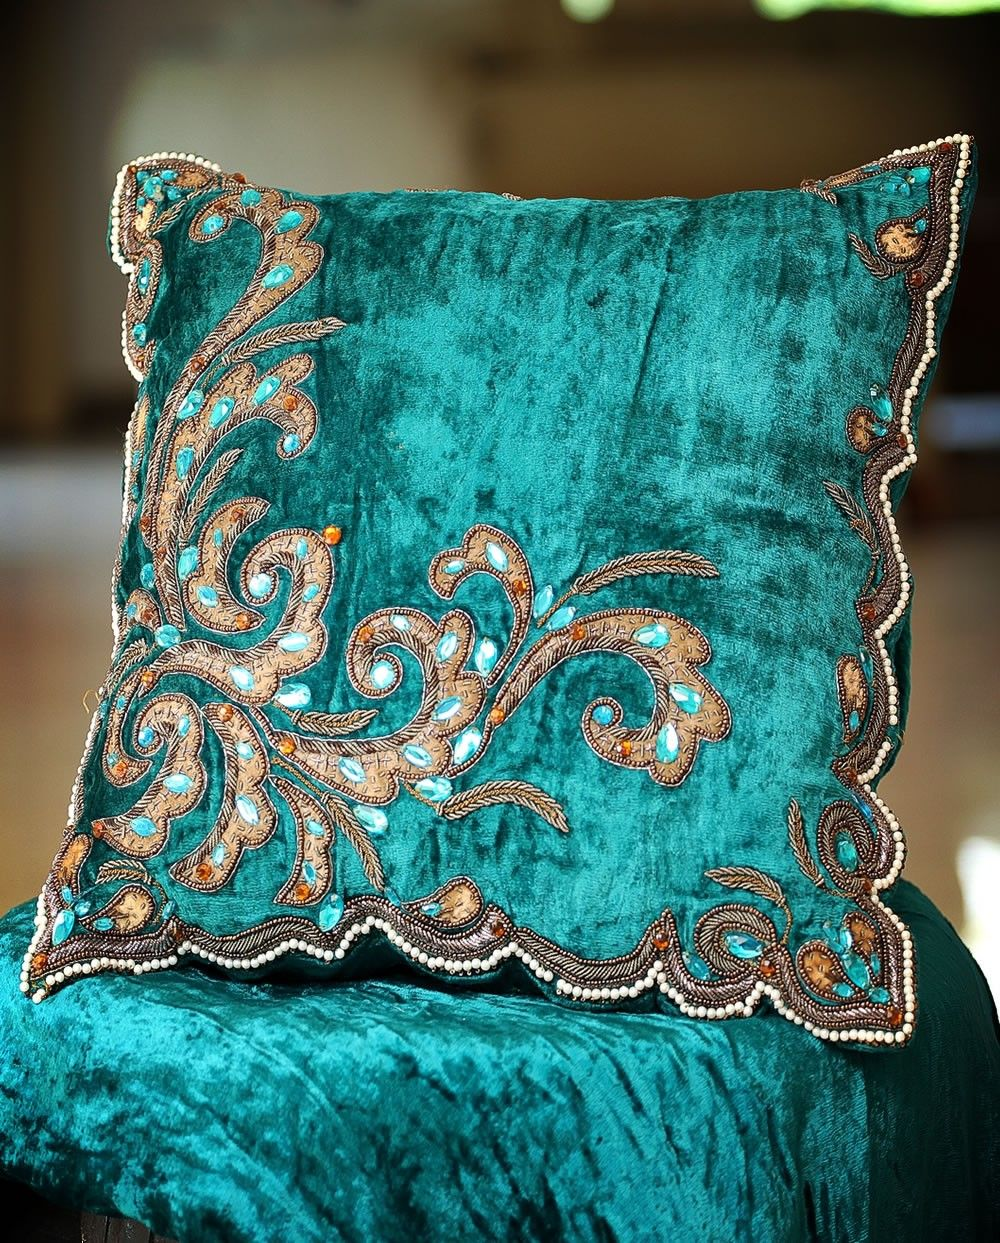 Turquoise blue Velvet decorative cushion with embroidery Pillows